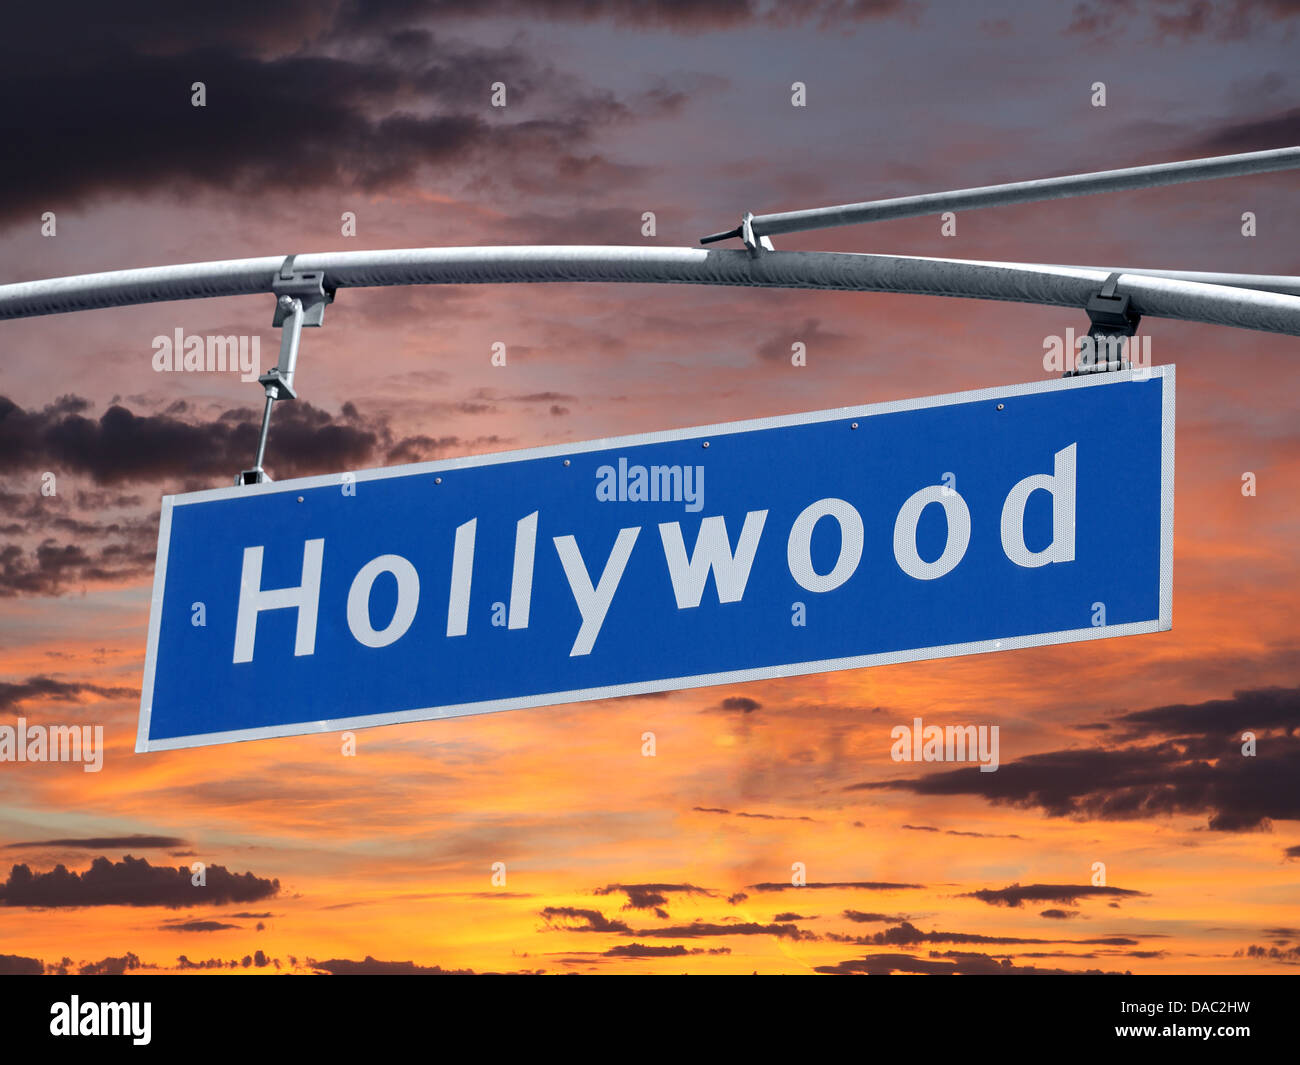 Hollywood Blvd street sign with orange sunset sky - Stock Image